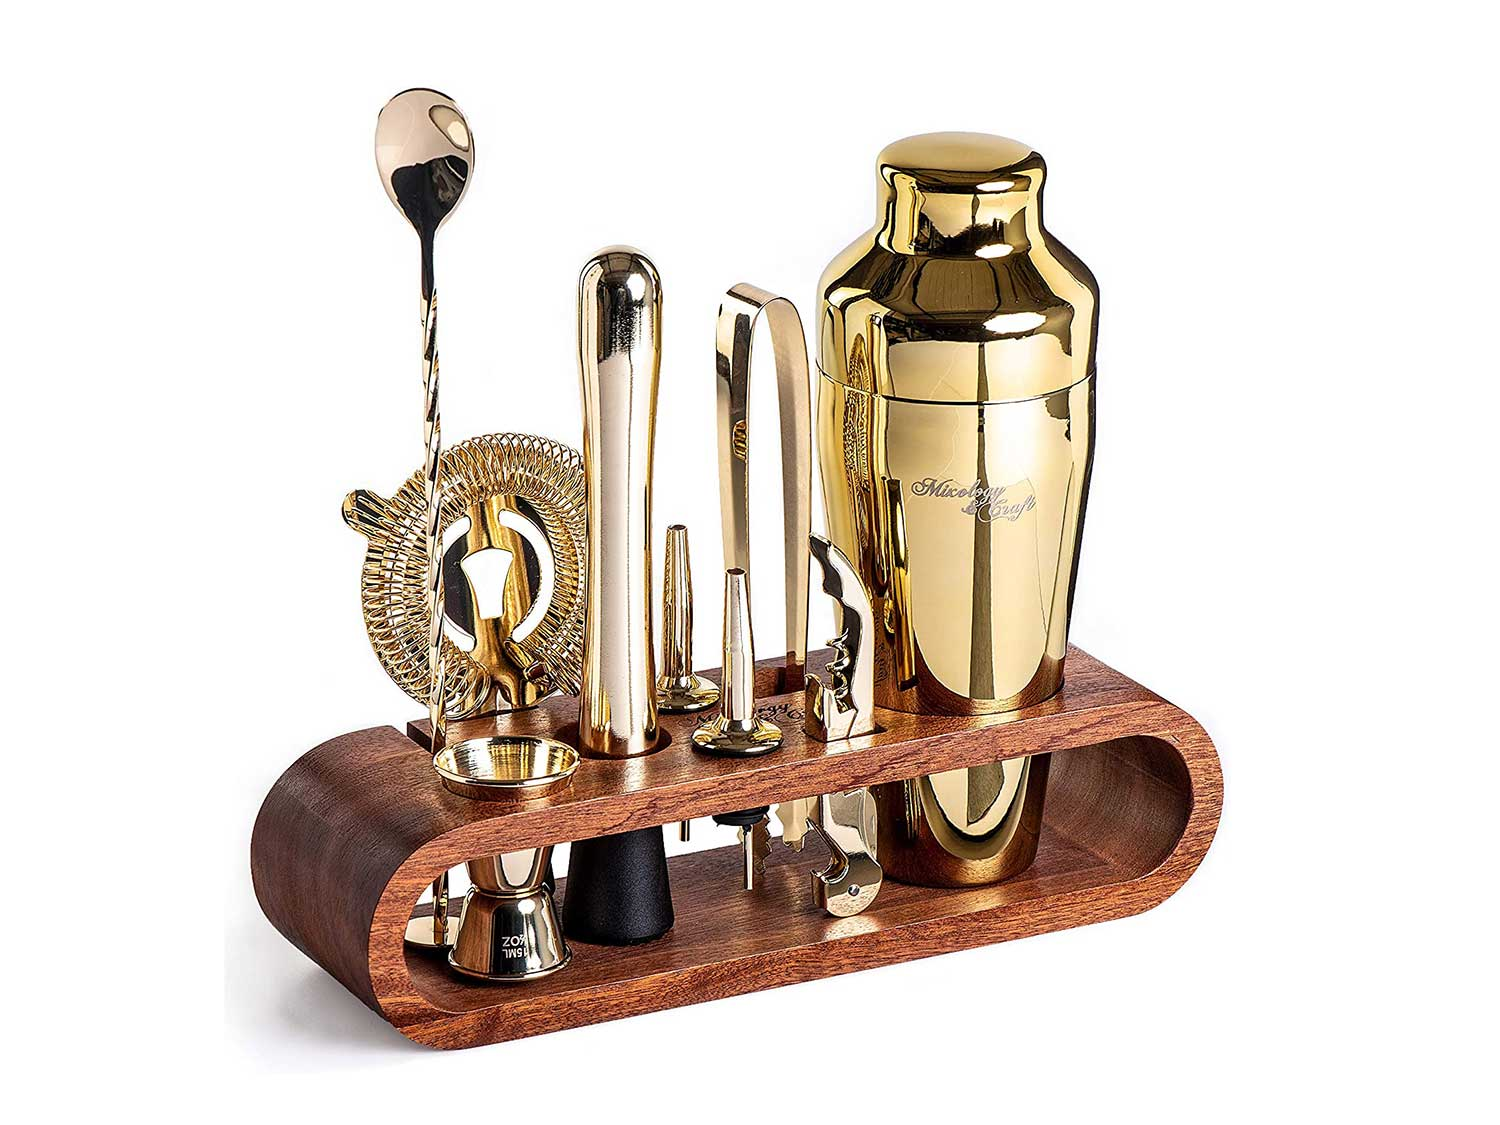 Mixology Bartender Kit: 10-Piece Bar Set Cocktail Shaker Set with Stylish Mahogany Stand   Perfect Home Bartending Kit with Bar Tools and Martini Shaker for Foolproof Drink Mixing (Gold)